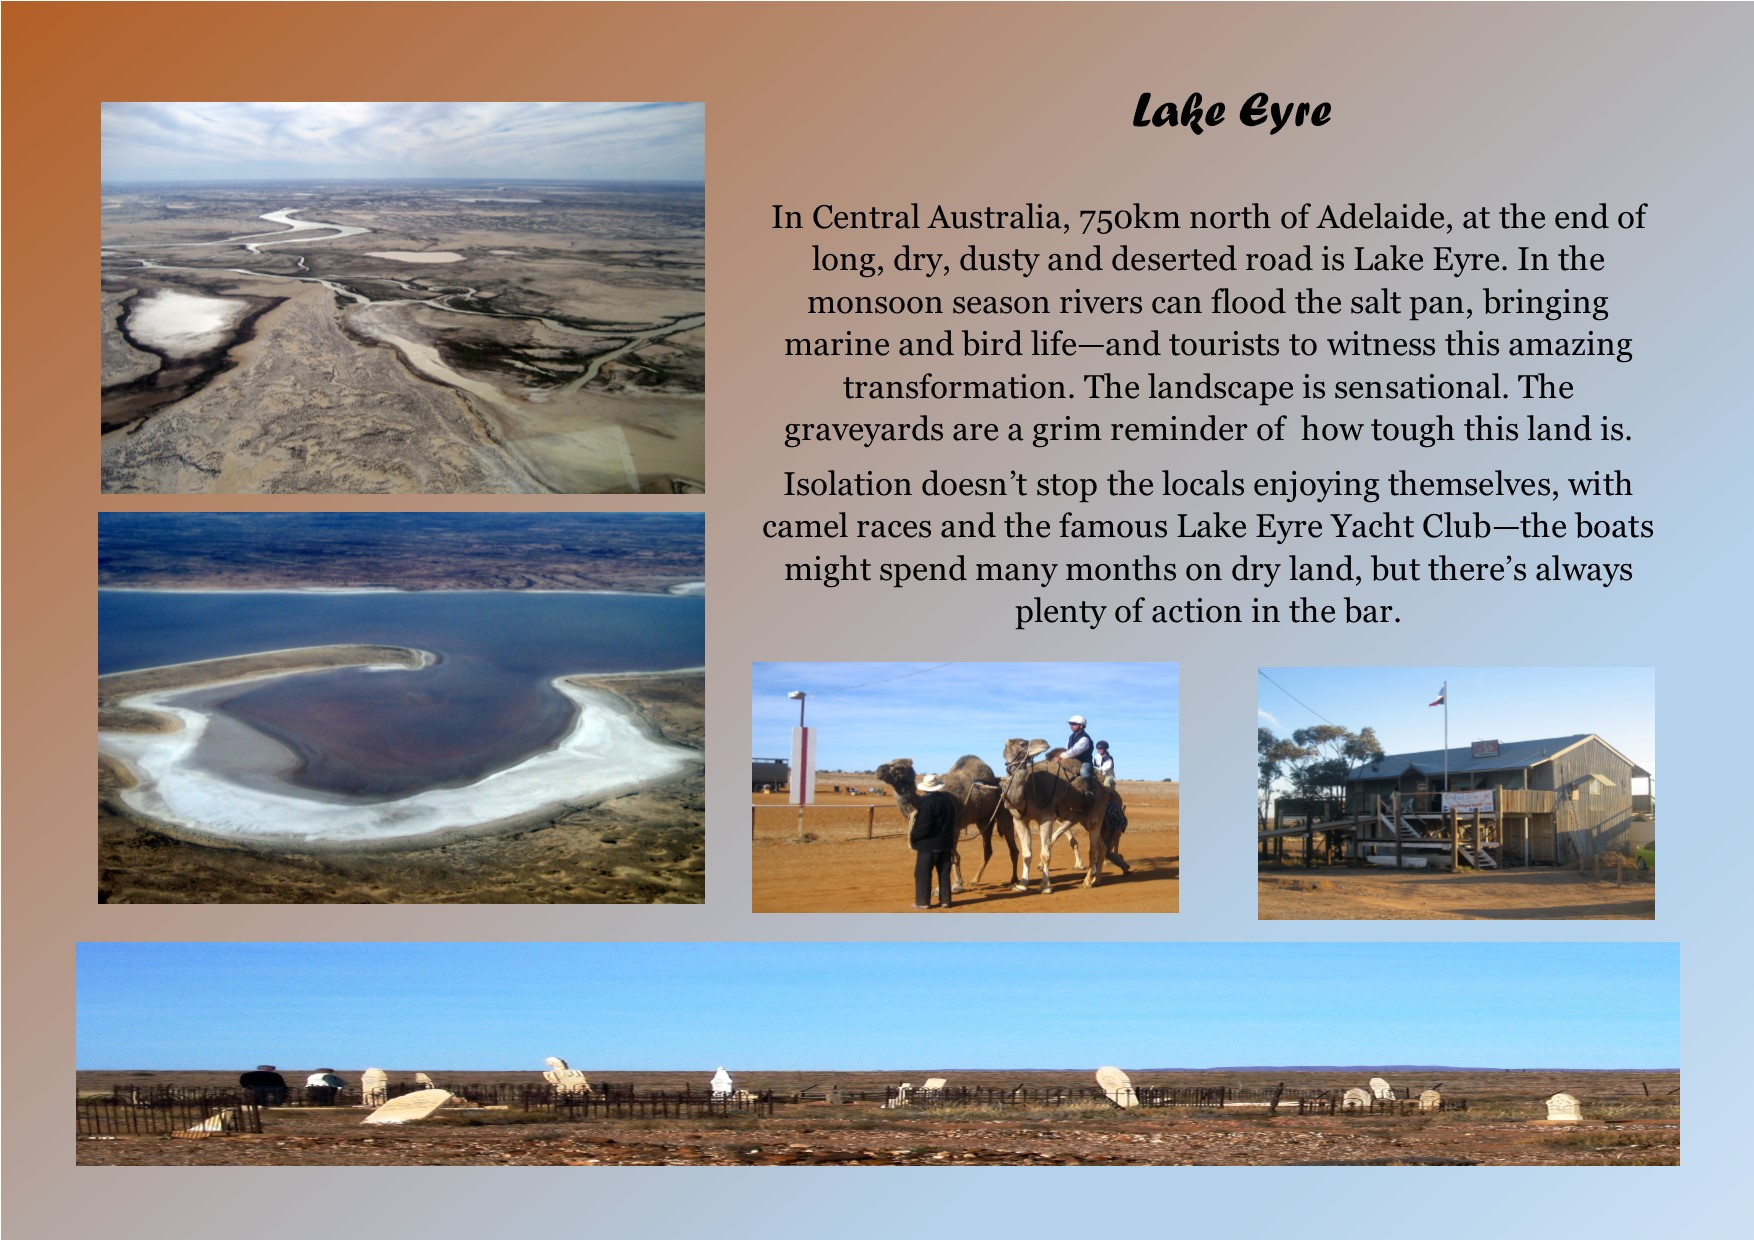 LakeEyre1